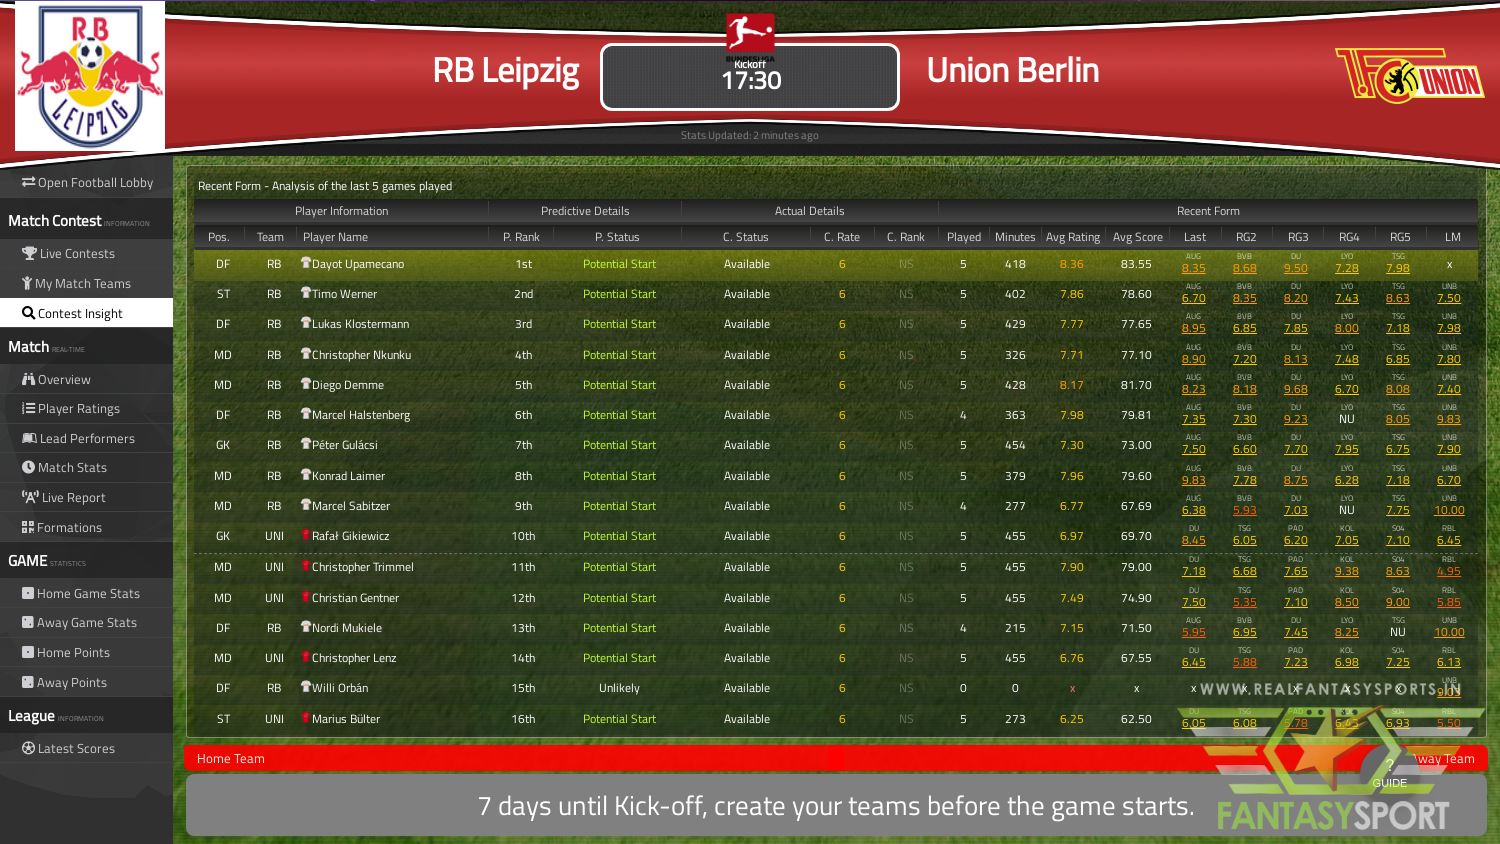 Fantasy Football Rb Leipzig Vs Union Berlin Saturday 18th January 2020